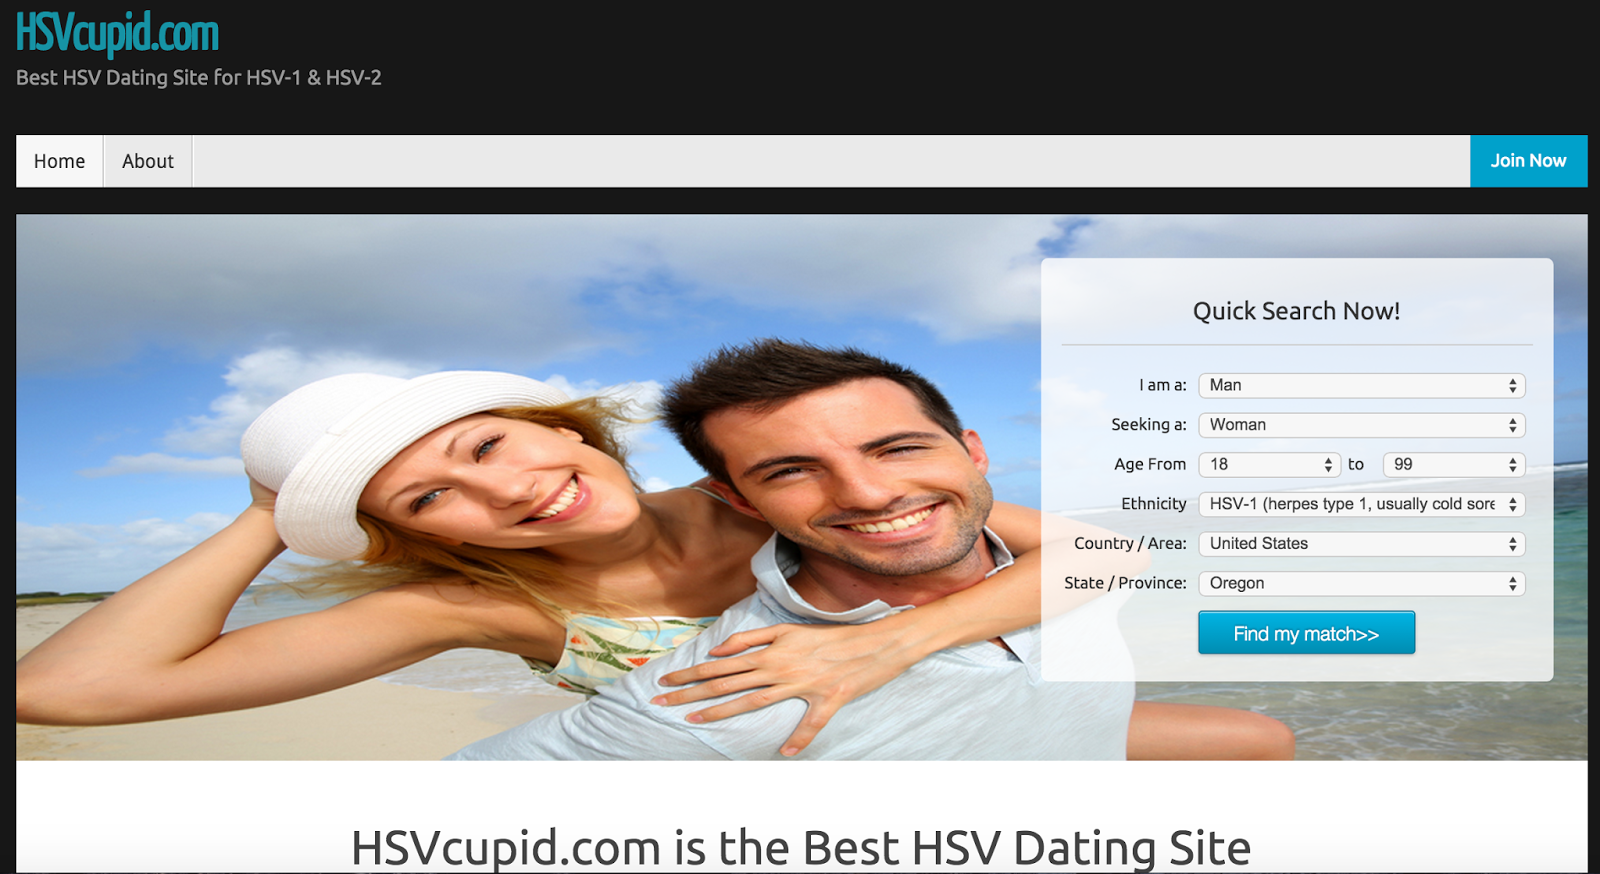 Top 5 Dating Apps for HIV Singles